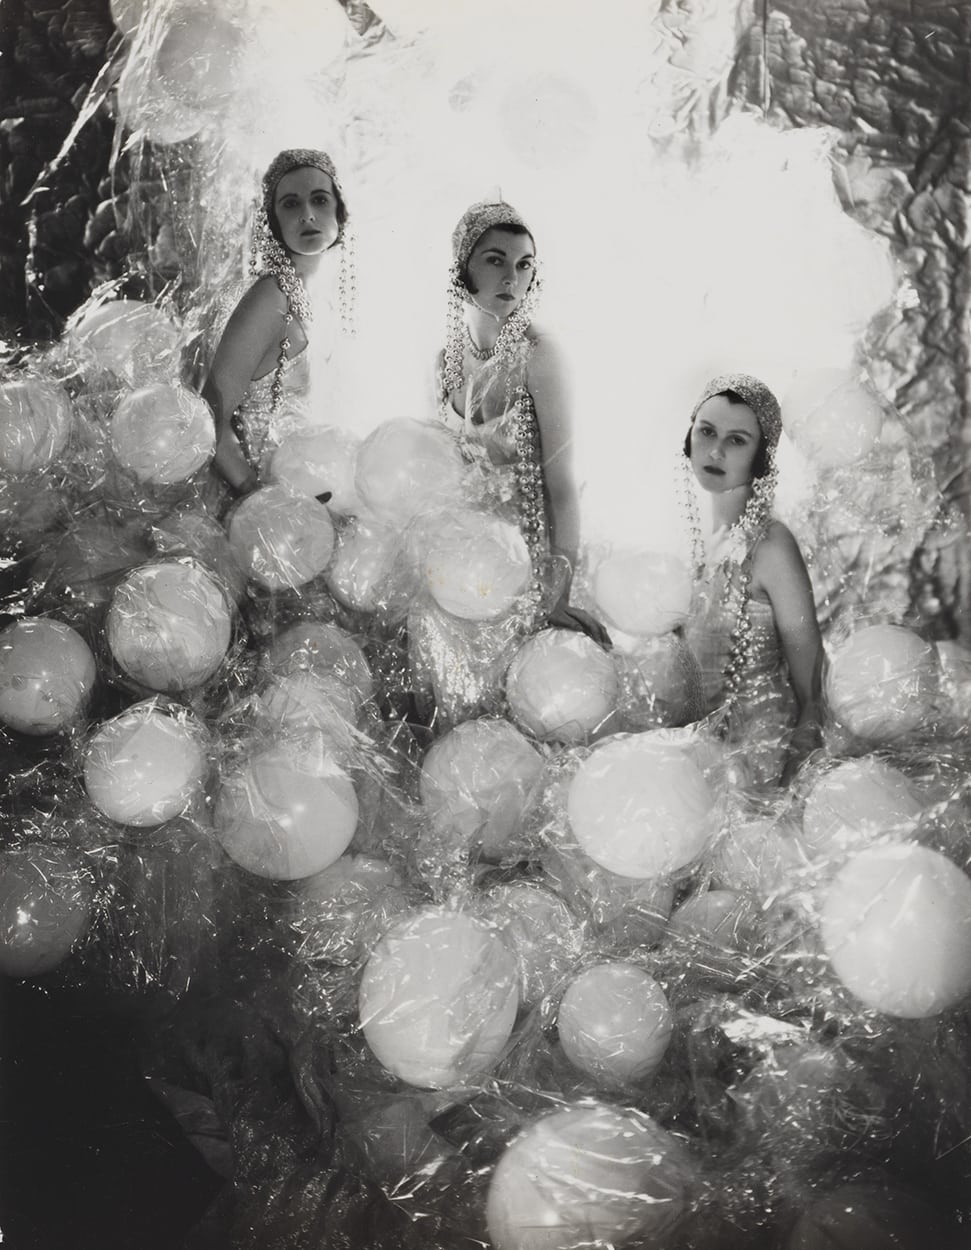 Baba Beaton, the Hon. Mrs Charles Baillie-Hamilton and Lady Bridget Poulett 1930 by Cecil Beaton